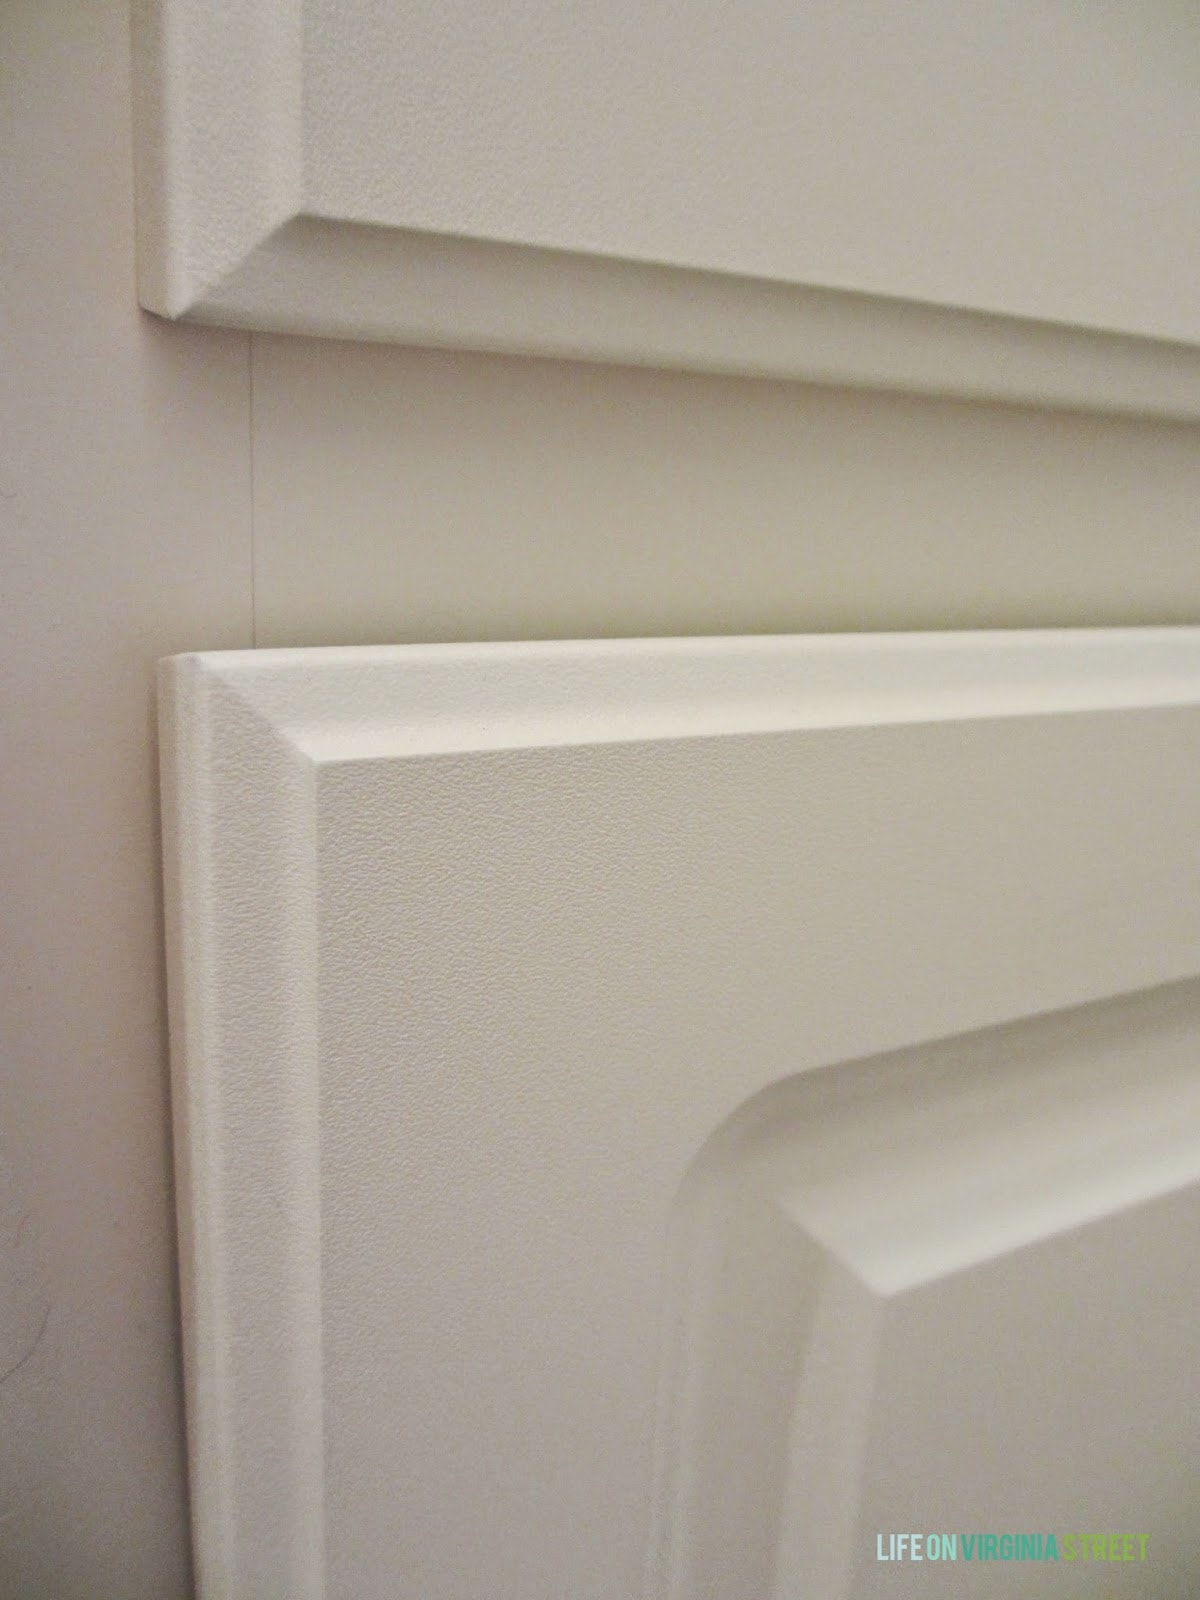 Bathroom Cabinets 2014 bathroom vanity makeover using country chic paint - life on